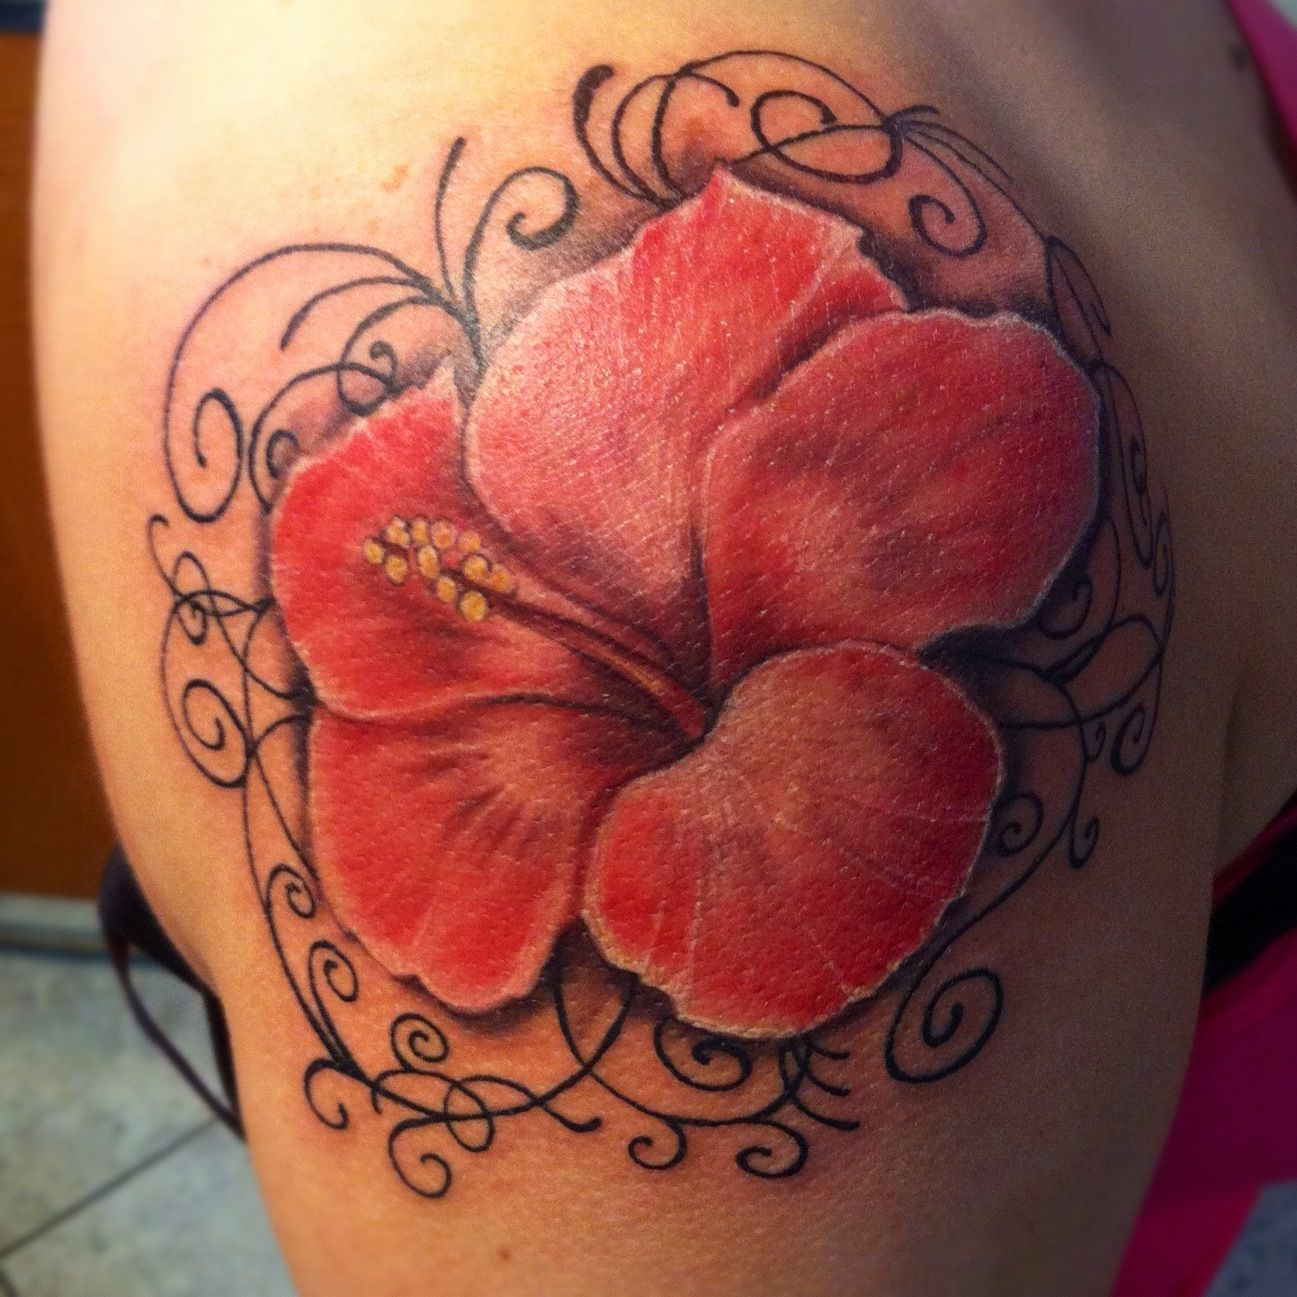 My work a hibiscus tattoo on shoulder tattoos pinterest a hibiscus tattoo on shoulder izmirmasajfo